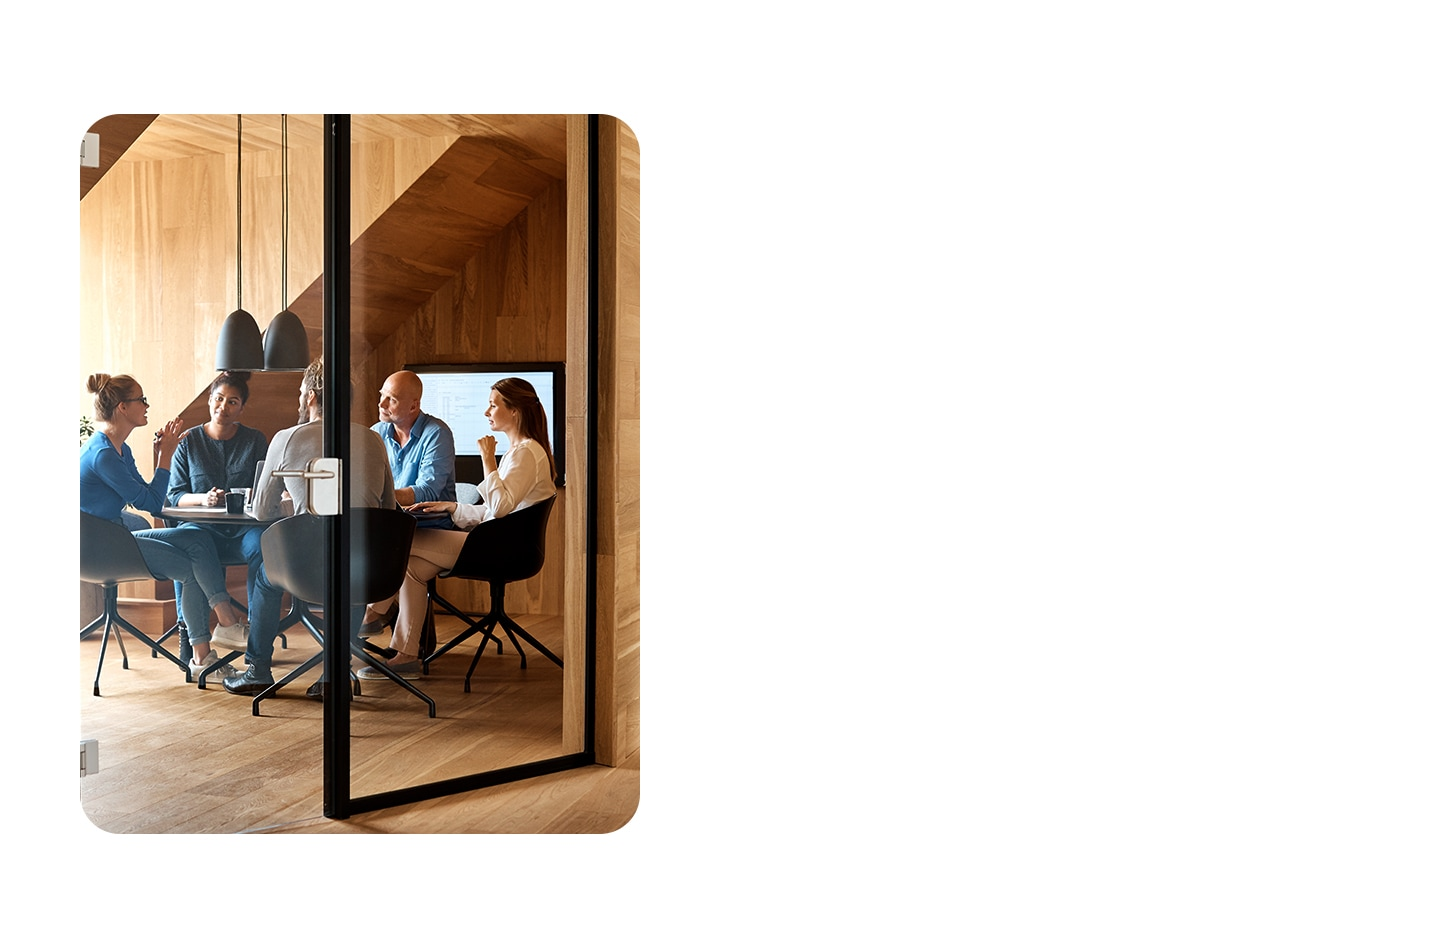 Coworkers meet at a table within a minimalist wooden office space.